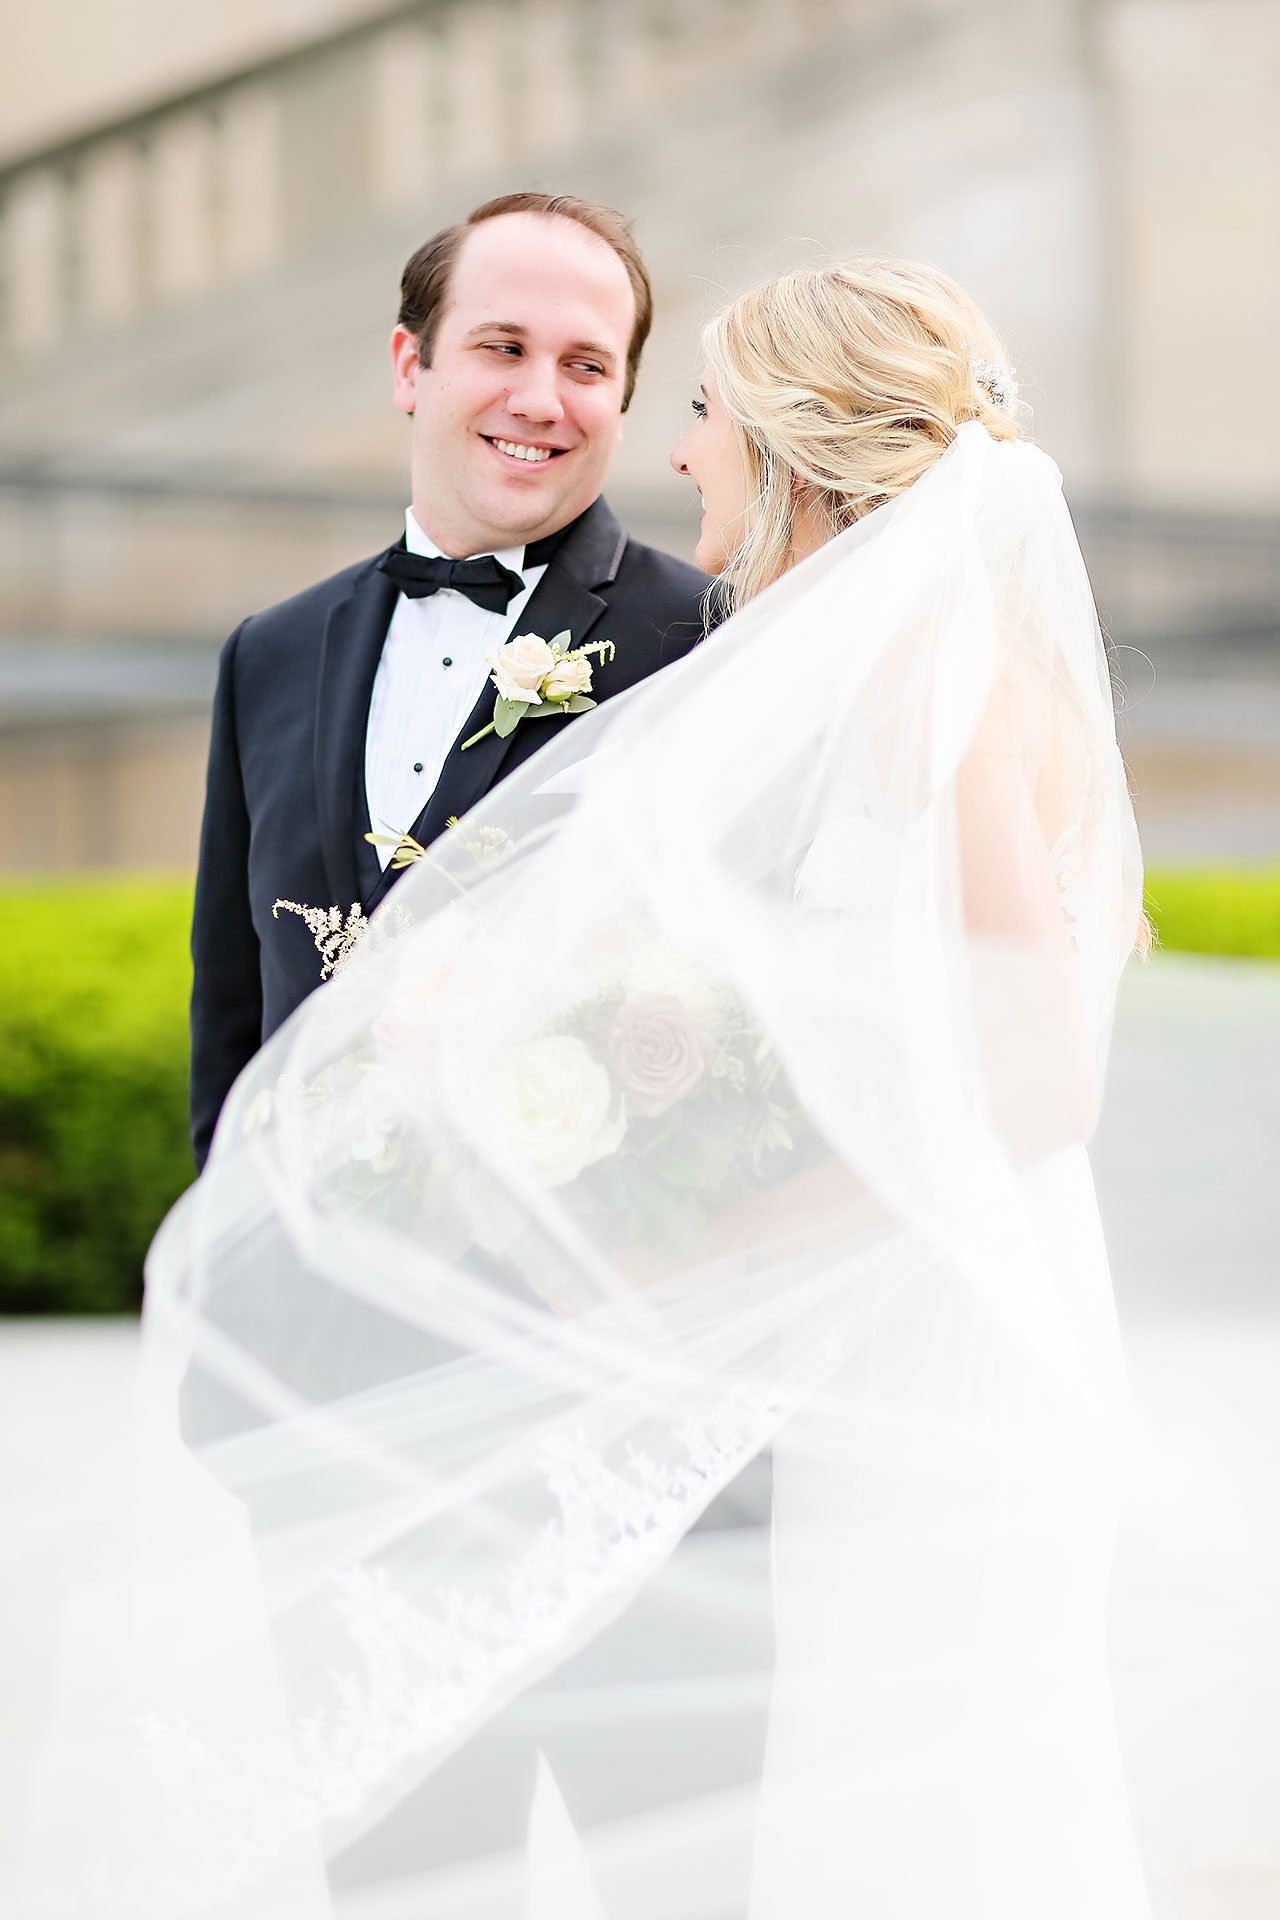 Allison Jeff Union Station Crowne Plaza Indianapolis wedding 203